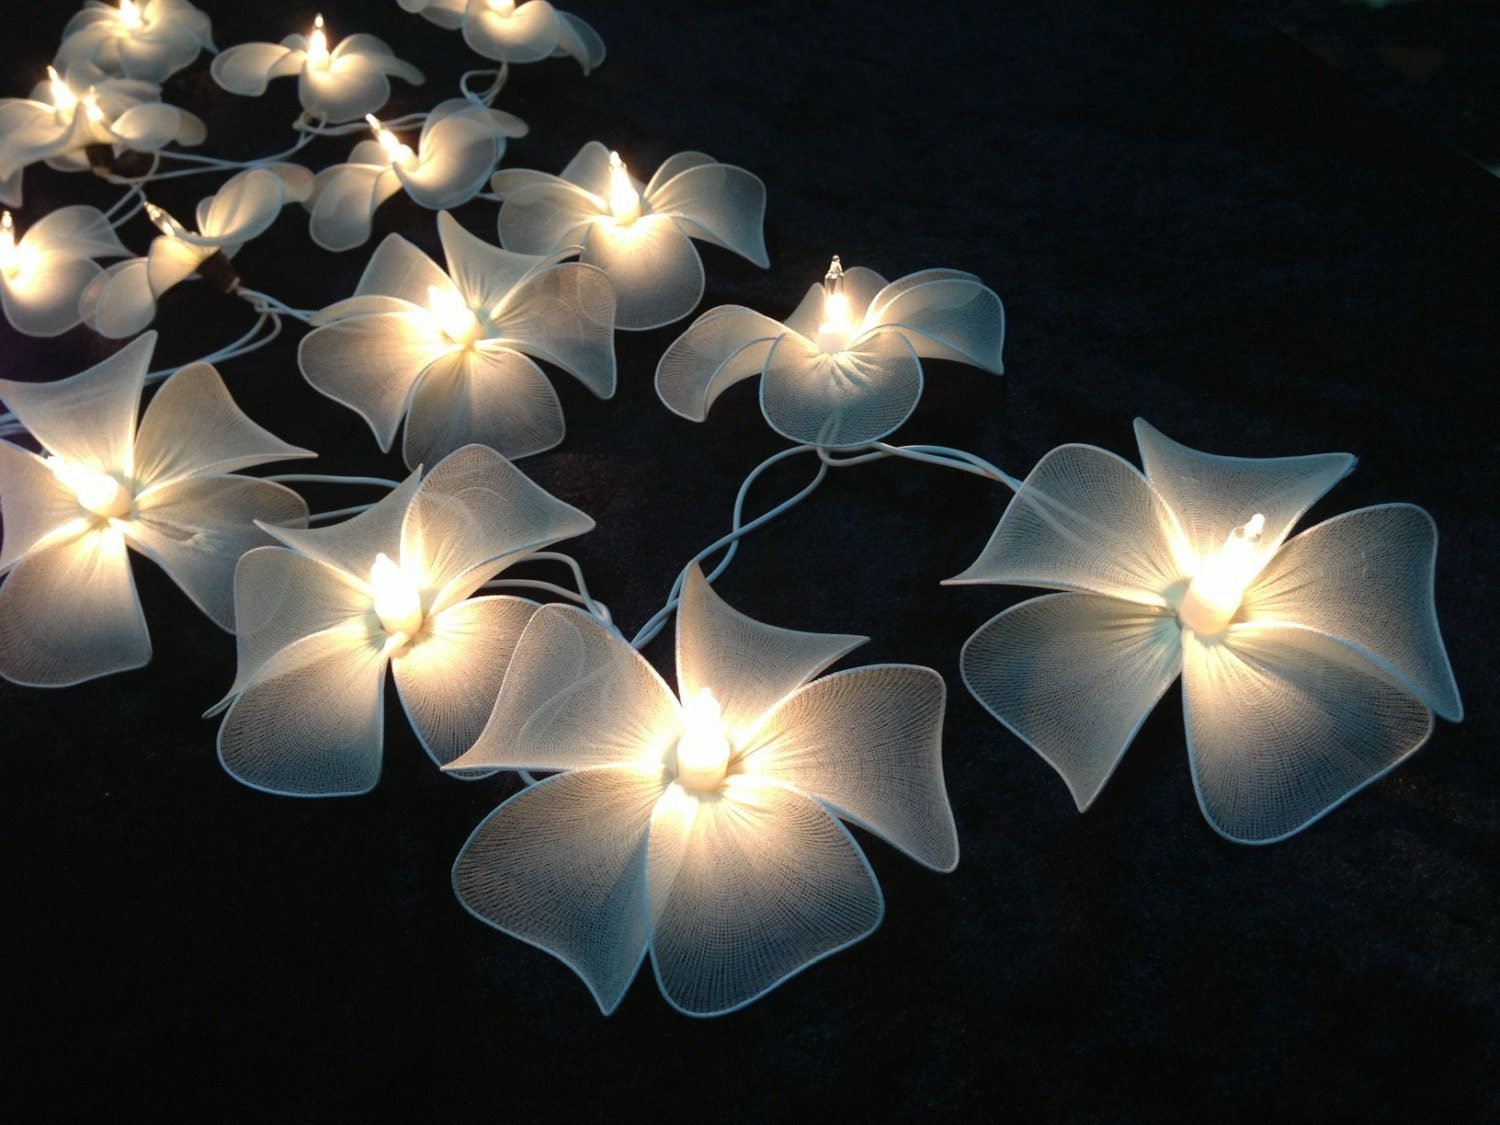 Custom Party String Lights : Handmade White flower string lights for PatioWeddingParty